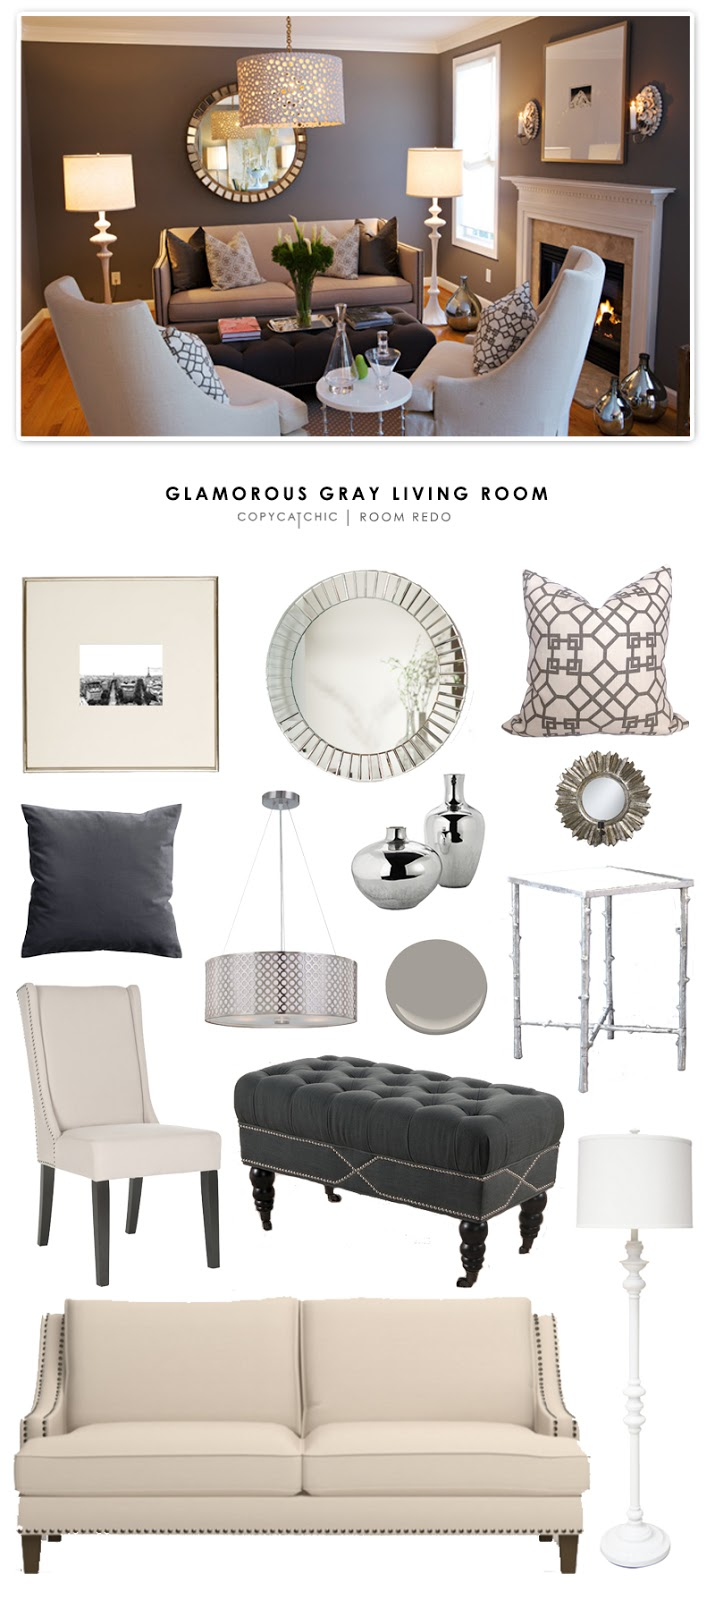 Heather Garrett's glamorous gray living room is recreated for less on Copy Cat Chic